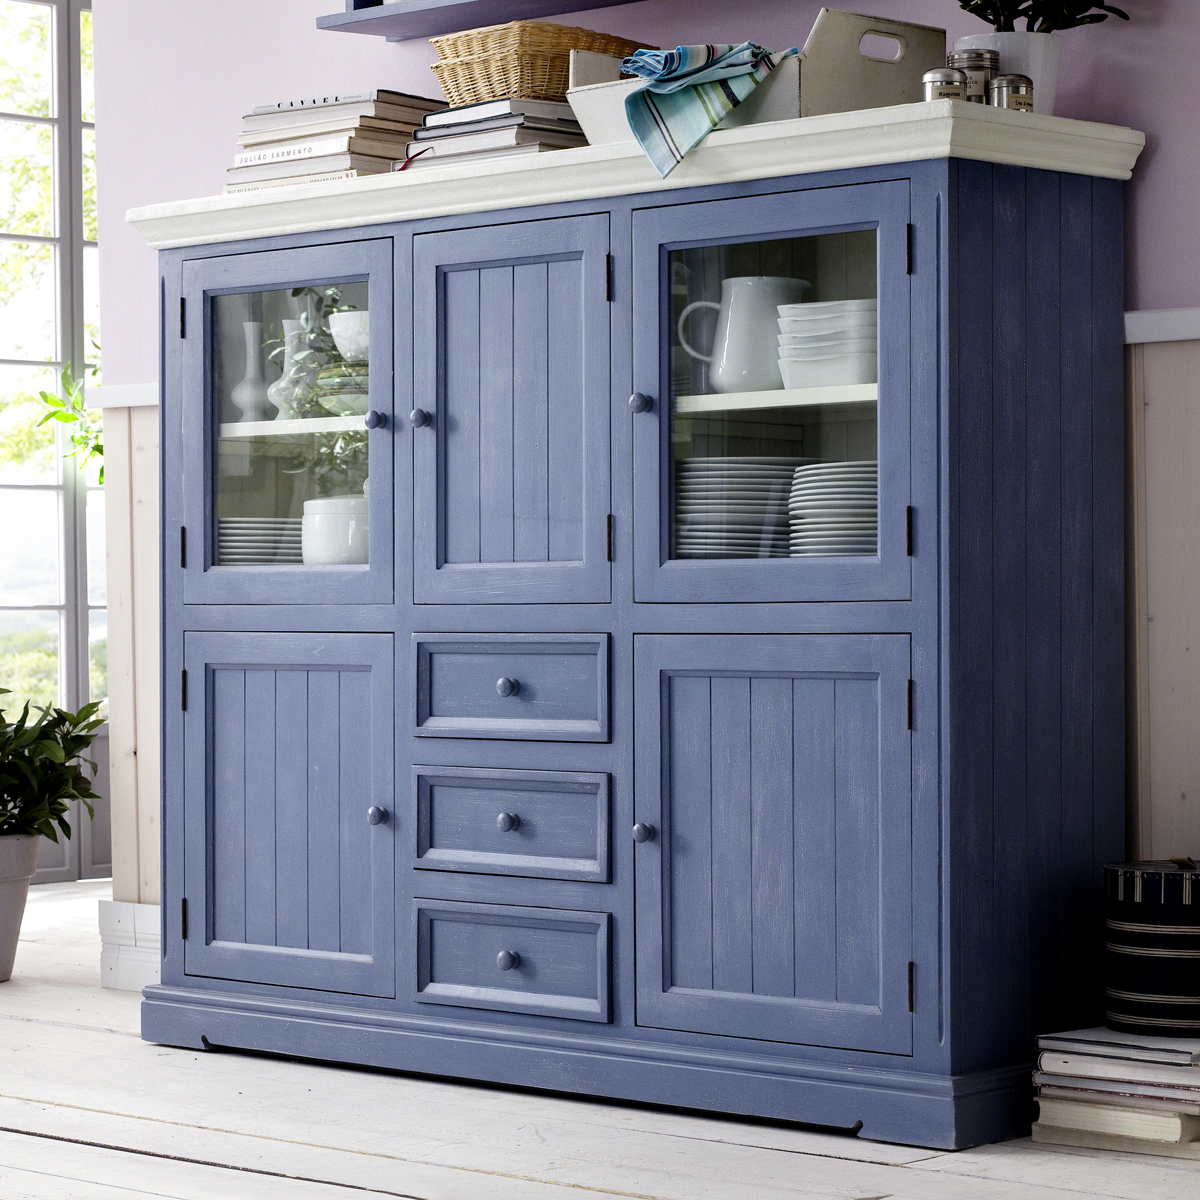 highboard falun buffet schrank kiefer teil massiv in brilliant blau und wei ebay. Black Bedroom Furniture Sets. Home Design Ideas